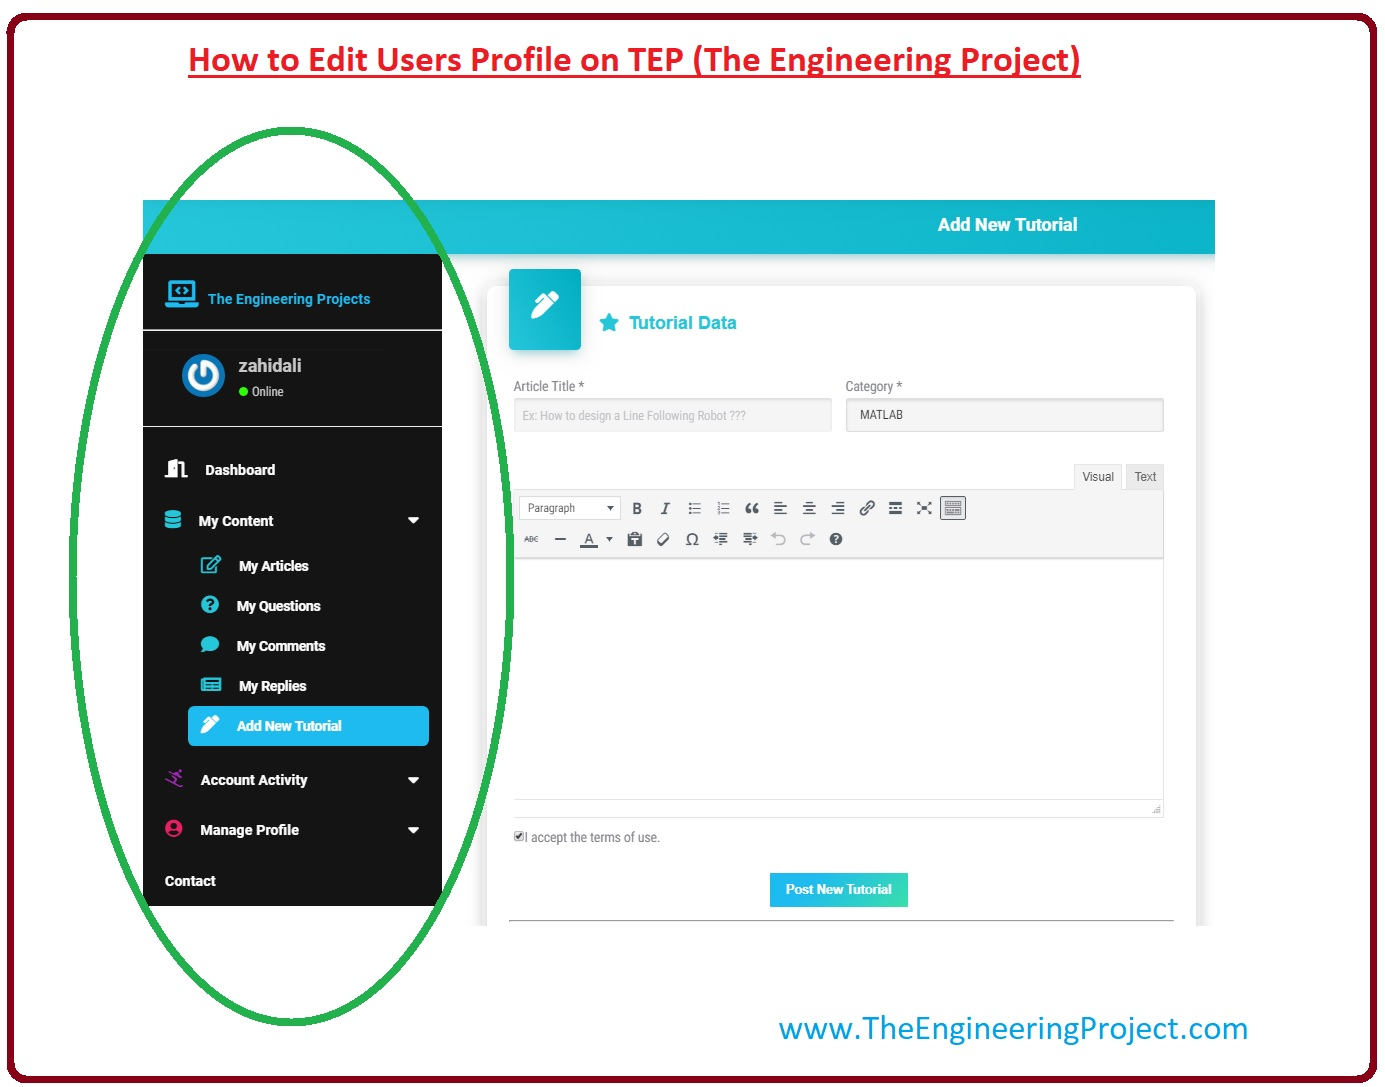 How to Post Tutorial on TEP (The Engineering Project), Rules to Write Article on TEP (The Engineering Project), How to Write Article On TEP (The Engineering Project), How to Send Posts to the TEP (The Engineering Project) Team, How to Edit Users Profile on TEP (The Engineering Project), How to Contact With the TEP (The Engineering Project) Team